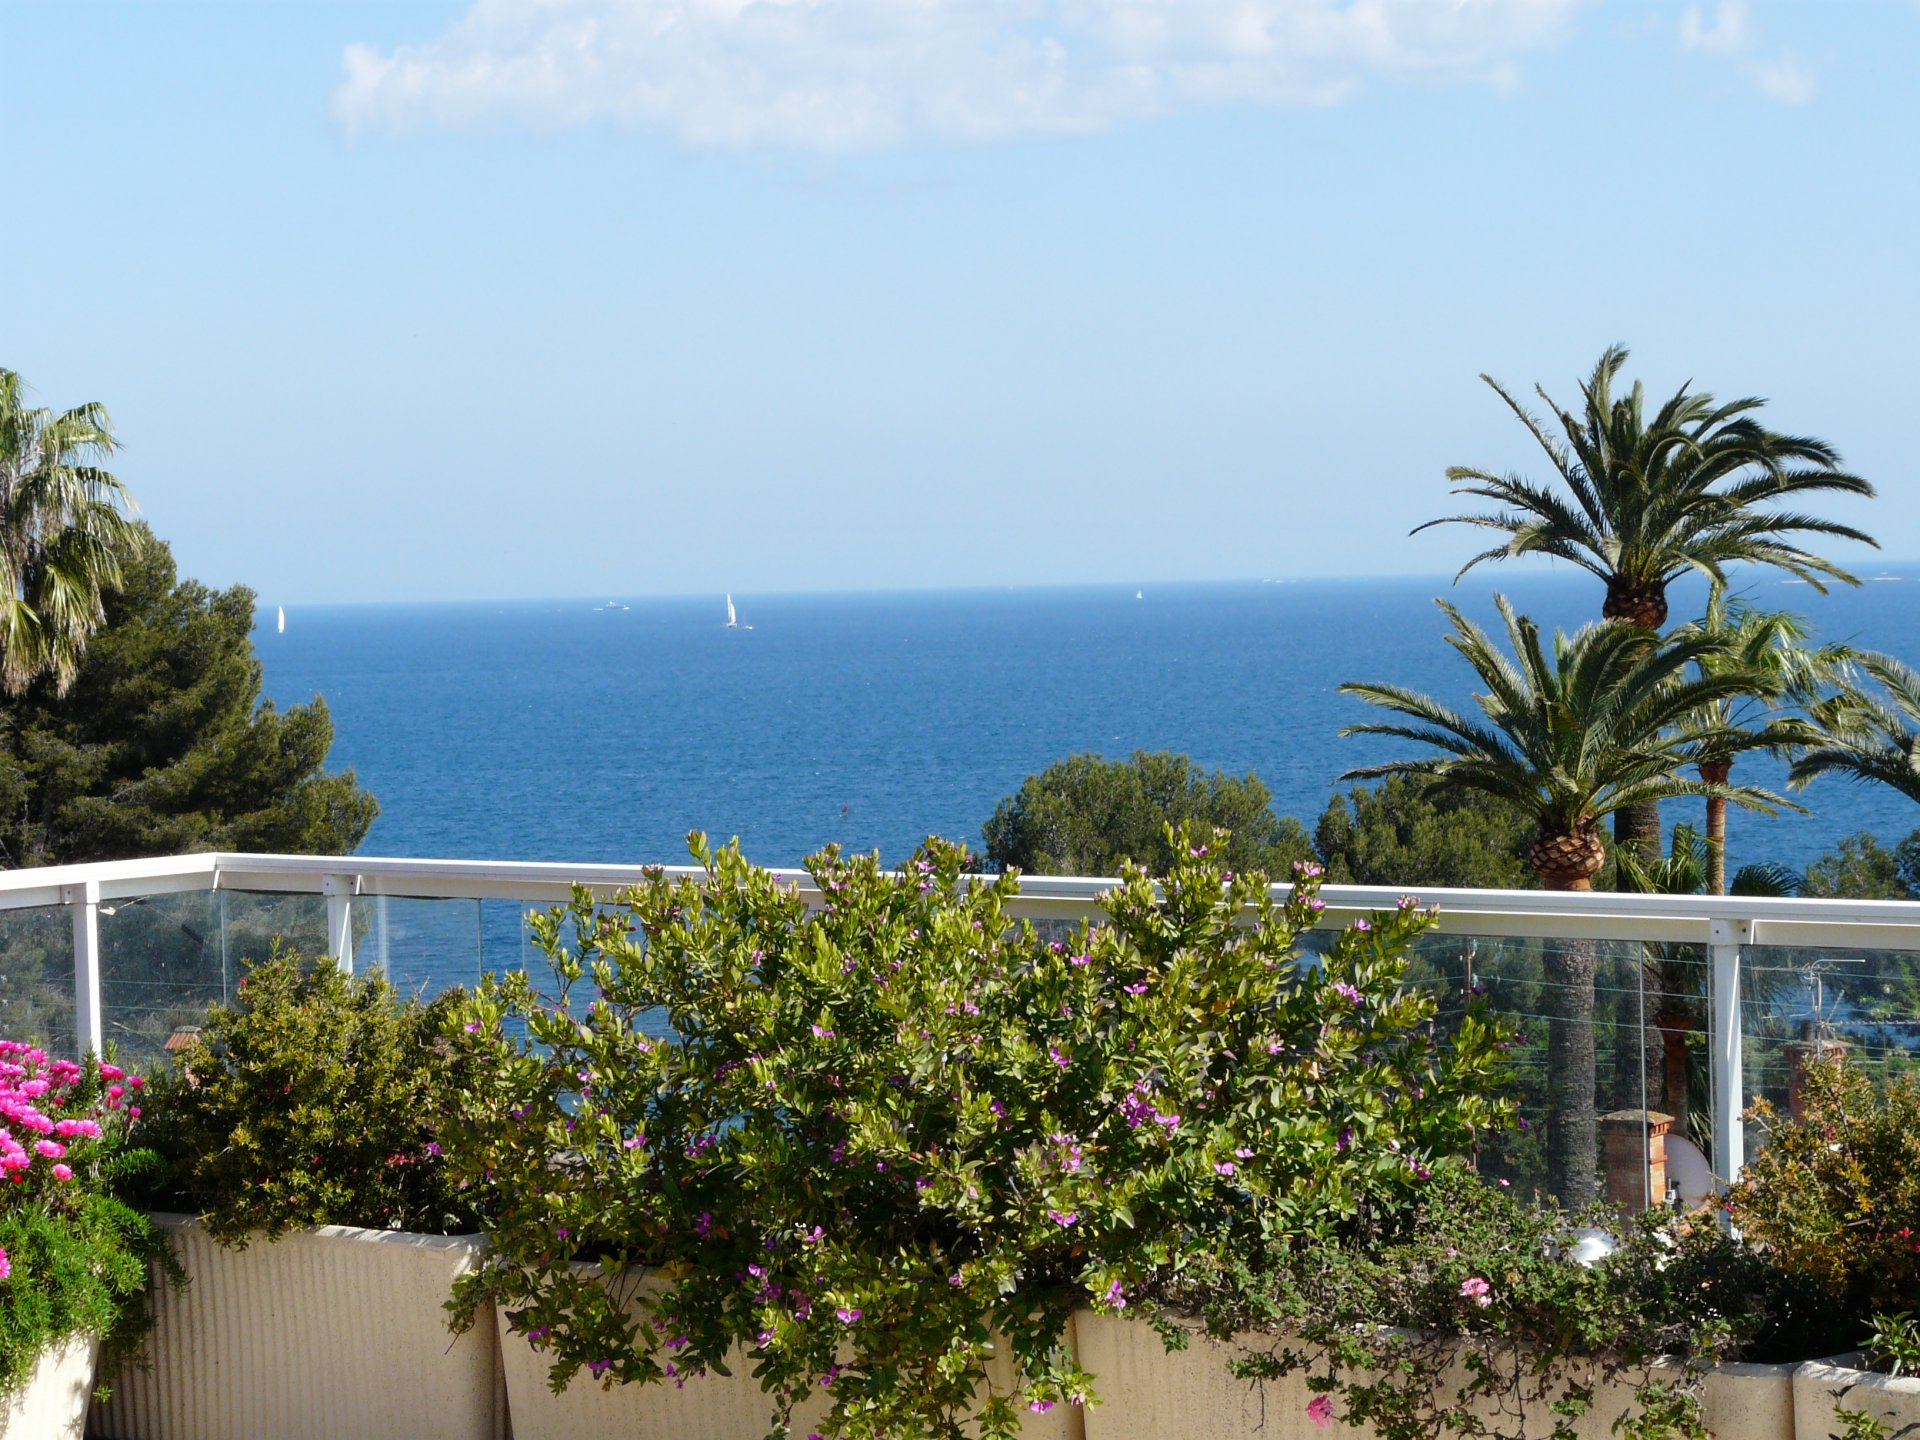 SUPERB PENTHOUSE WITH PANORAMIC SEA VIEW AT 700 M FROM THE BEACH